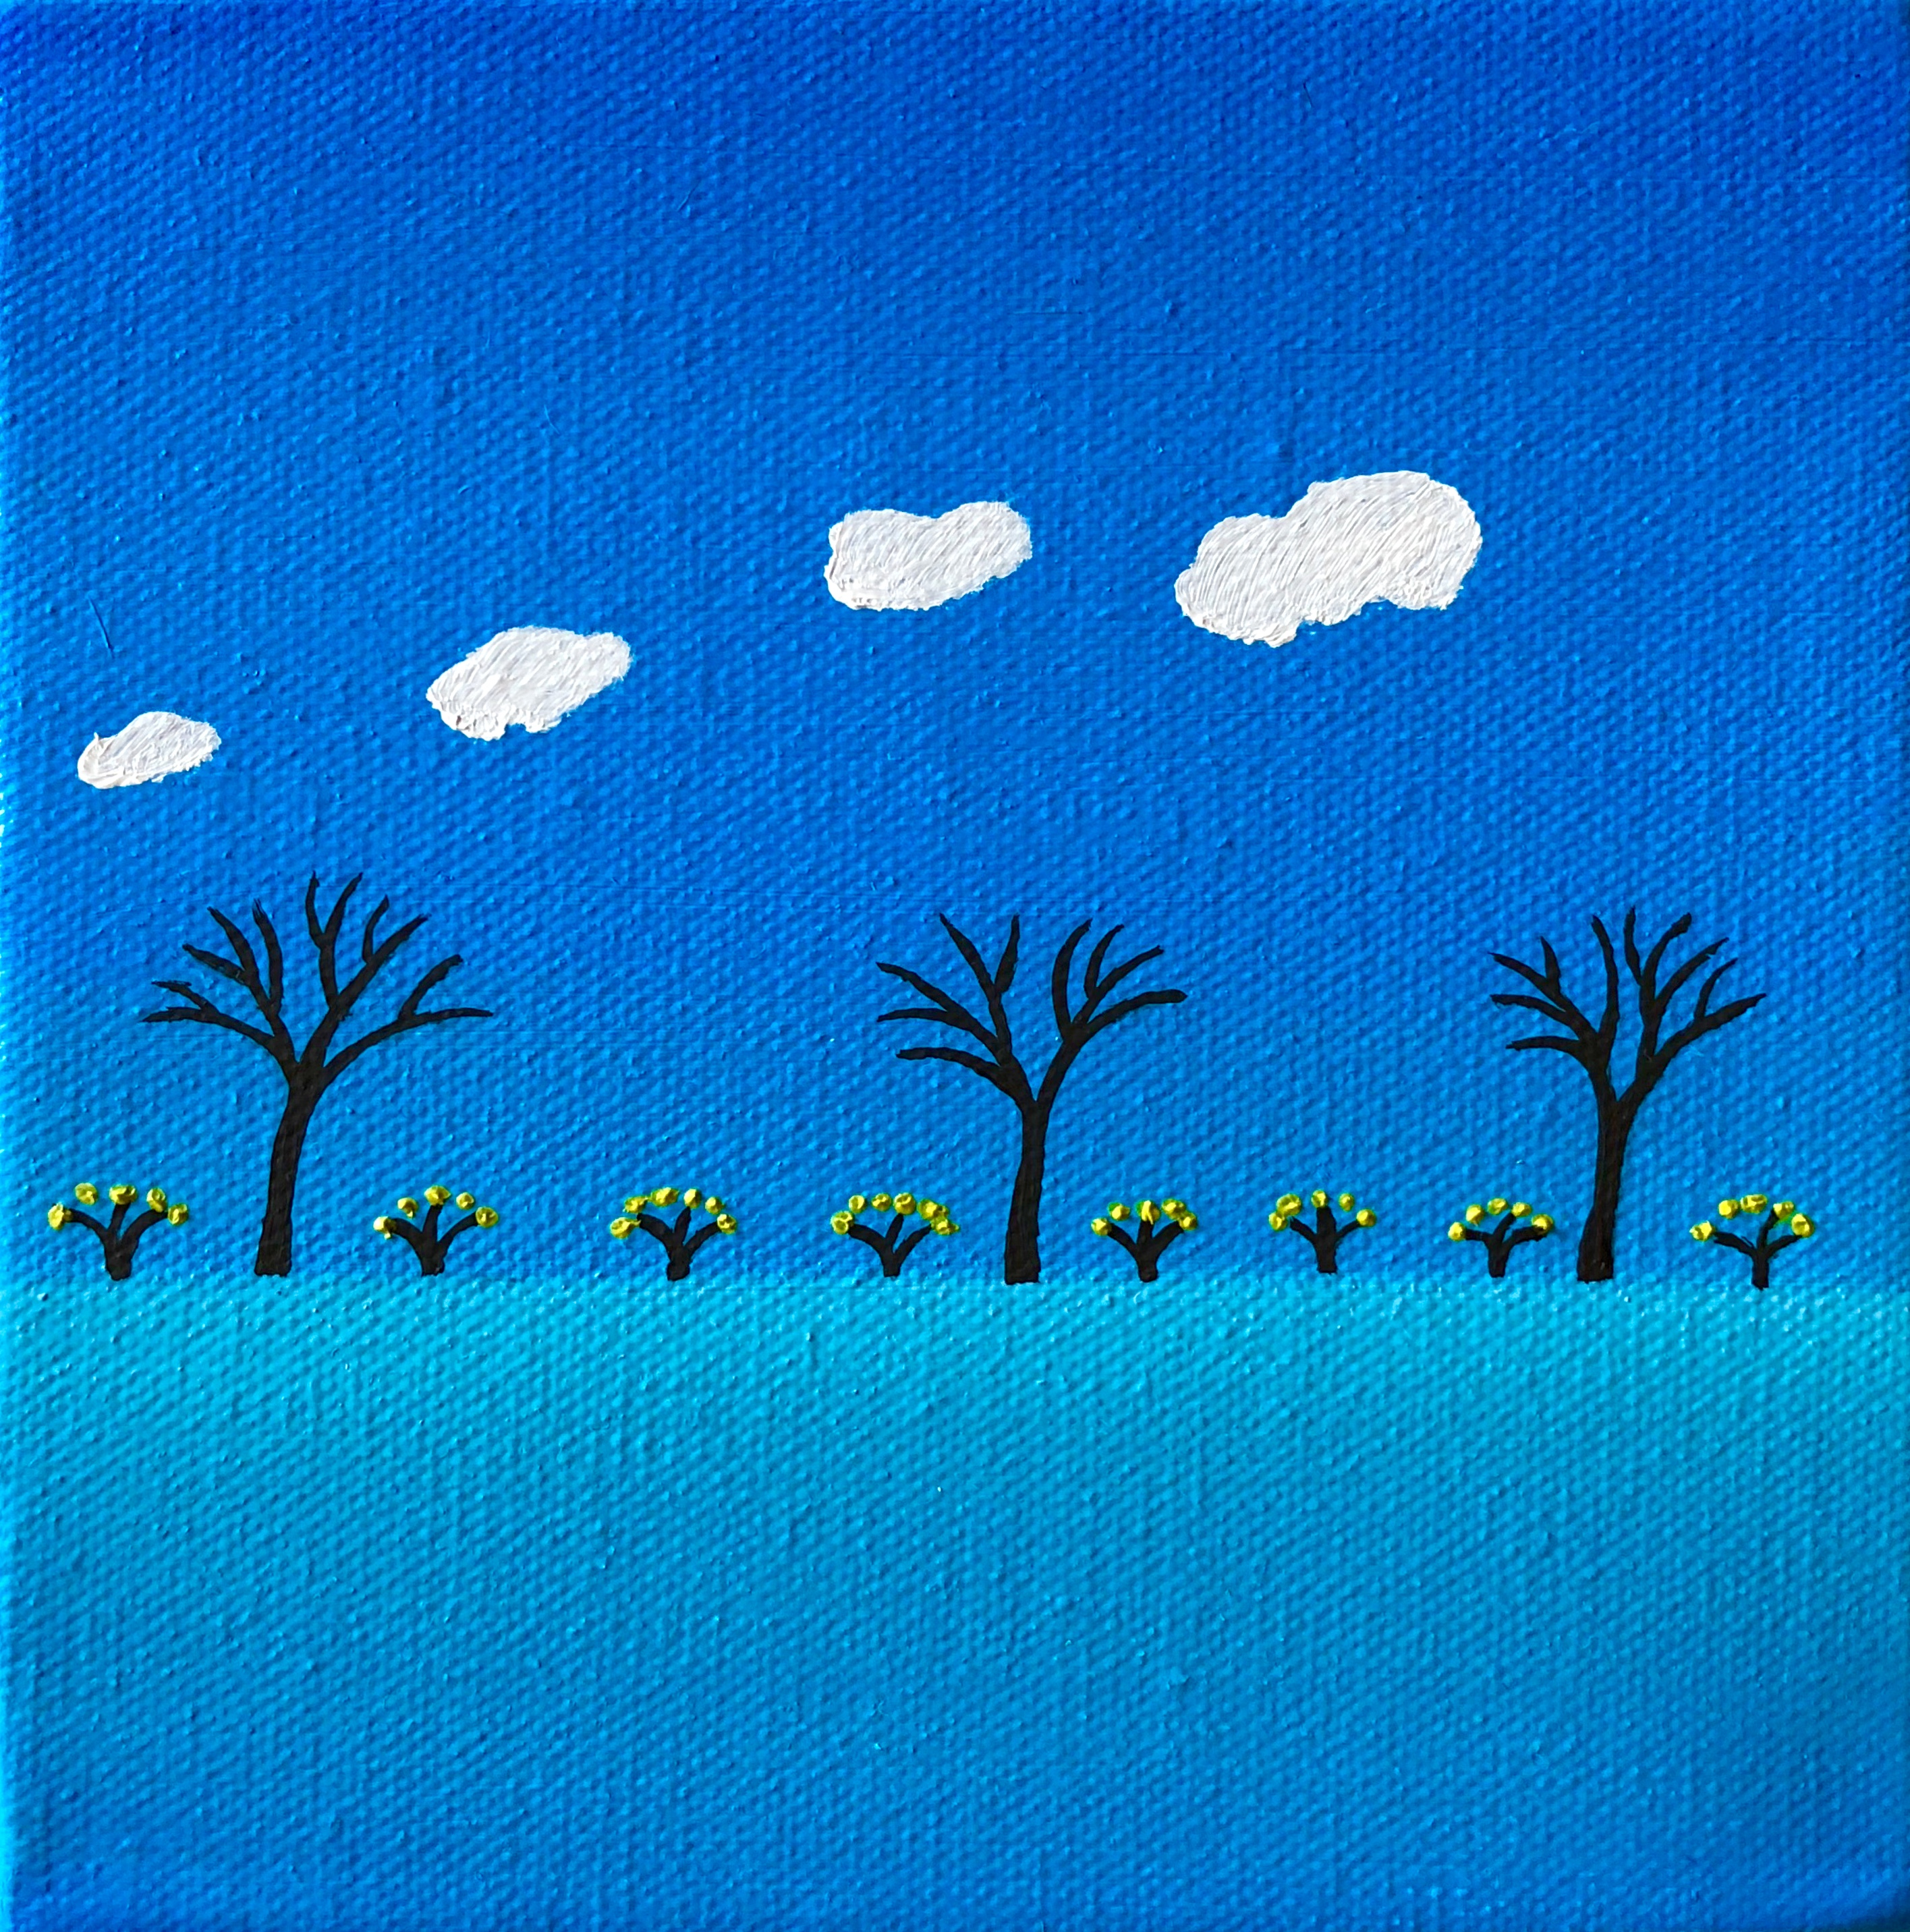 White Clouds-10 x 10 - Jah Roc Gallery